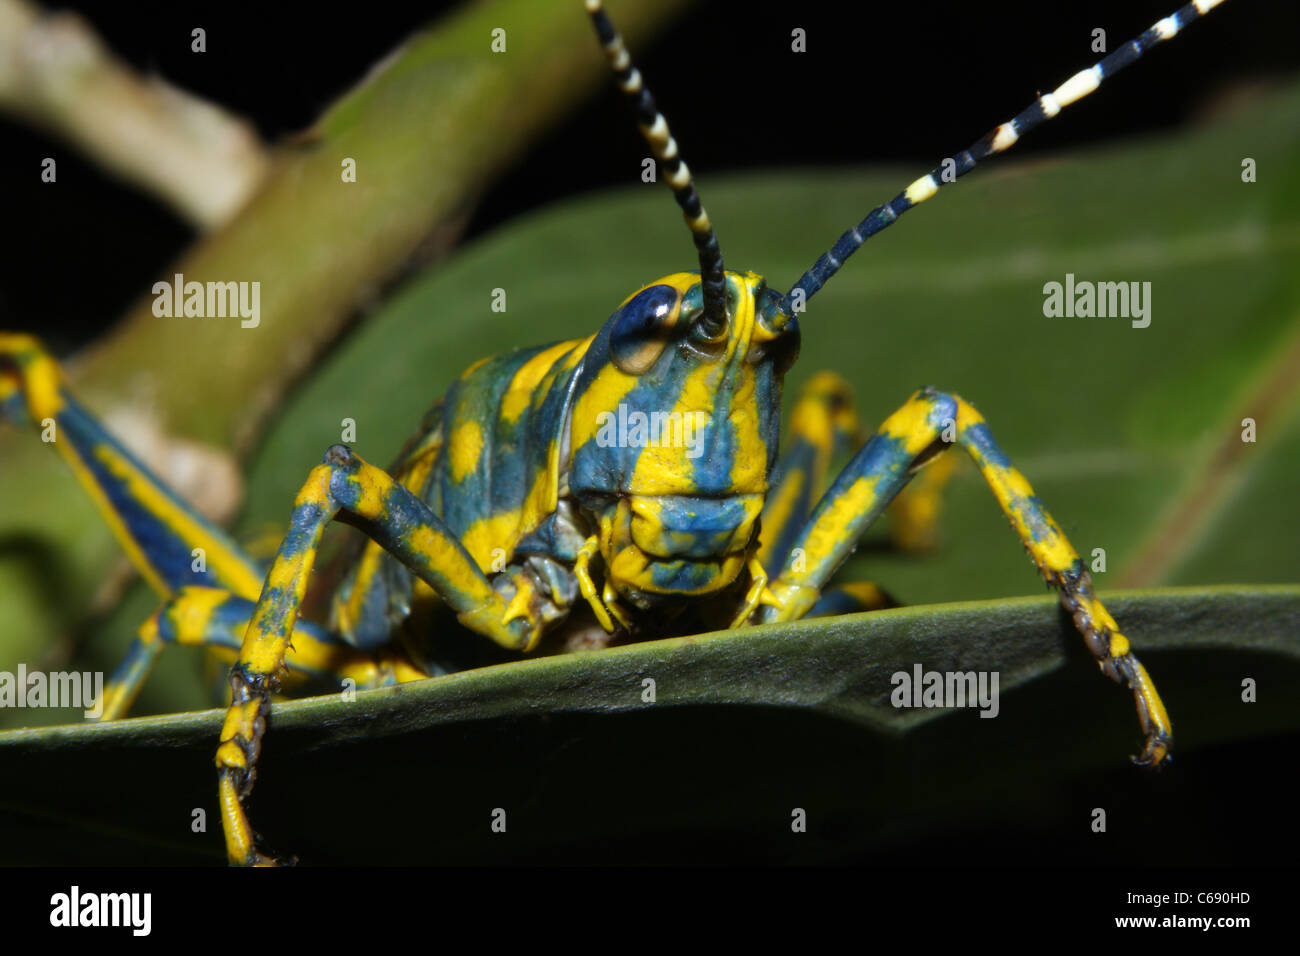 A painted grasshopper Poekilocerus pictus on a tree - Stock Image